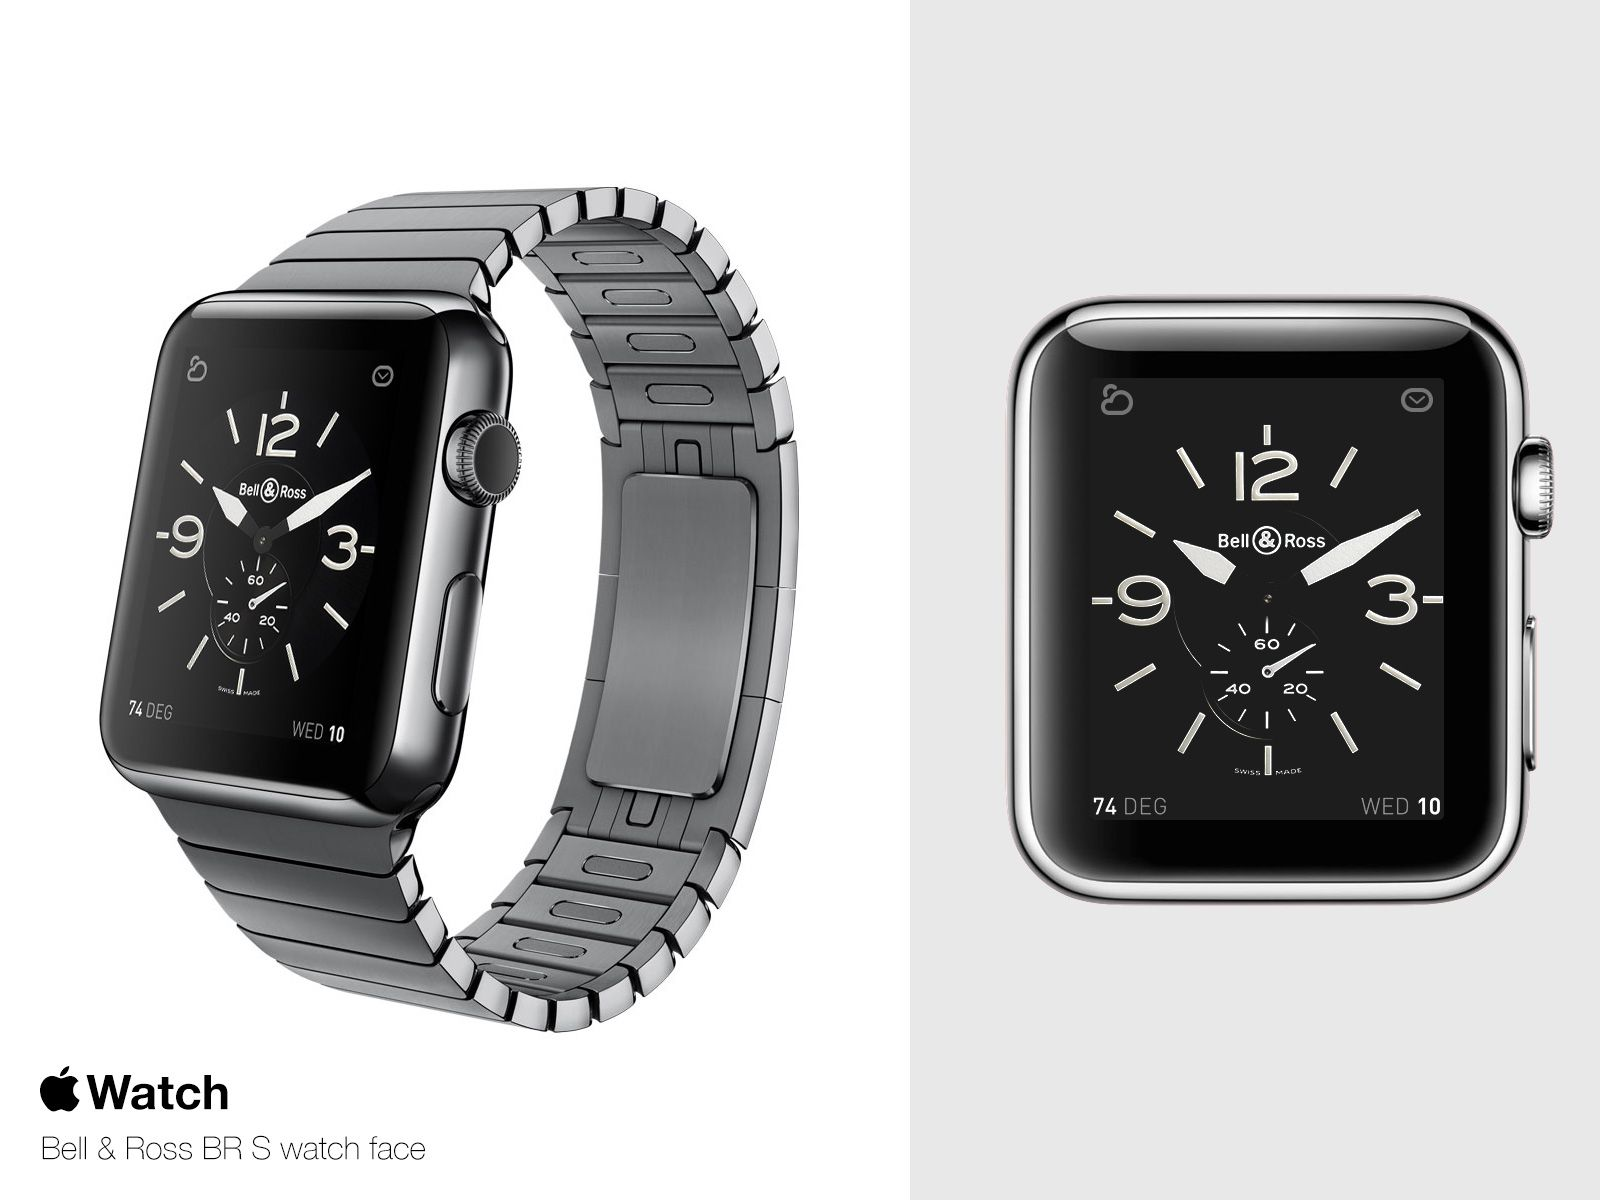 Apple Watch with Bell & Ross BR S watch face concept